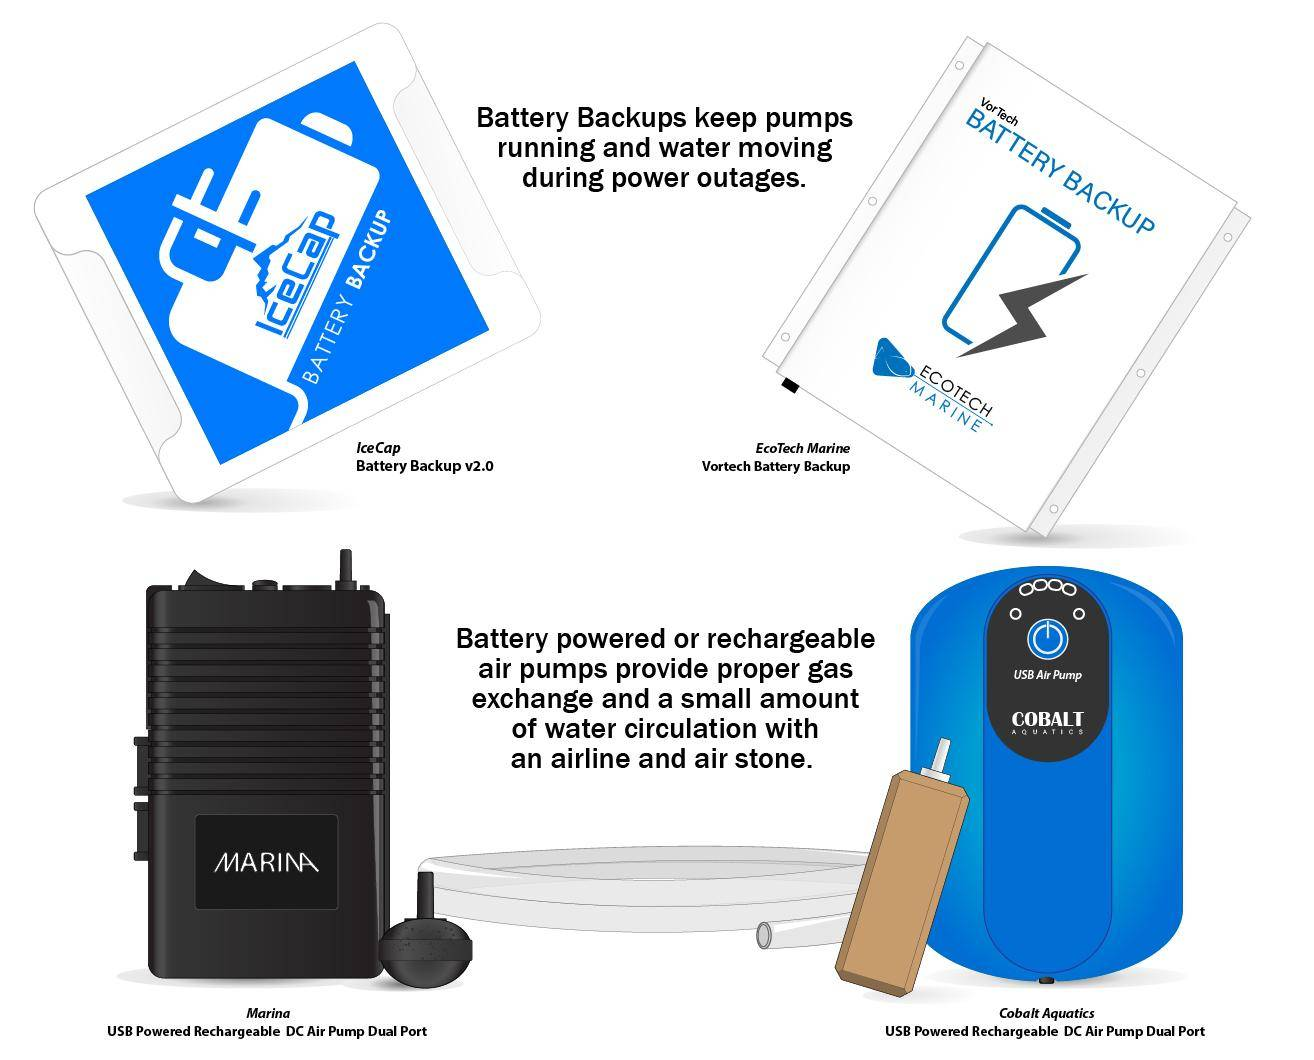 types of backup batteries and battery powered air pumps for aquarium emergencies